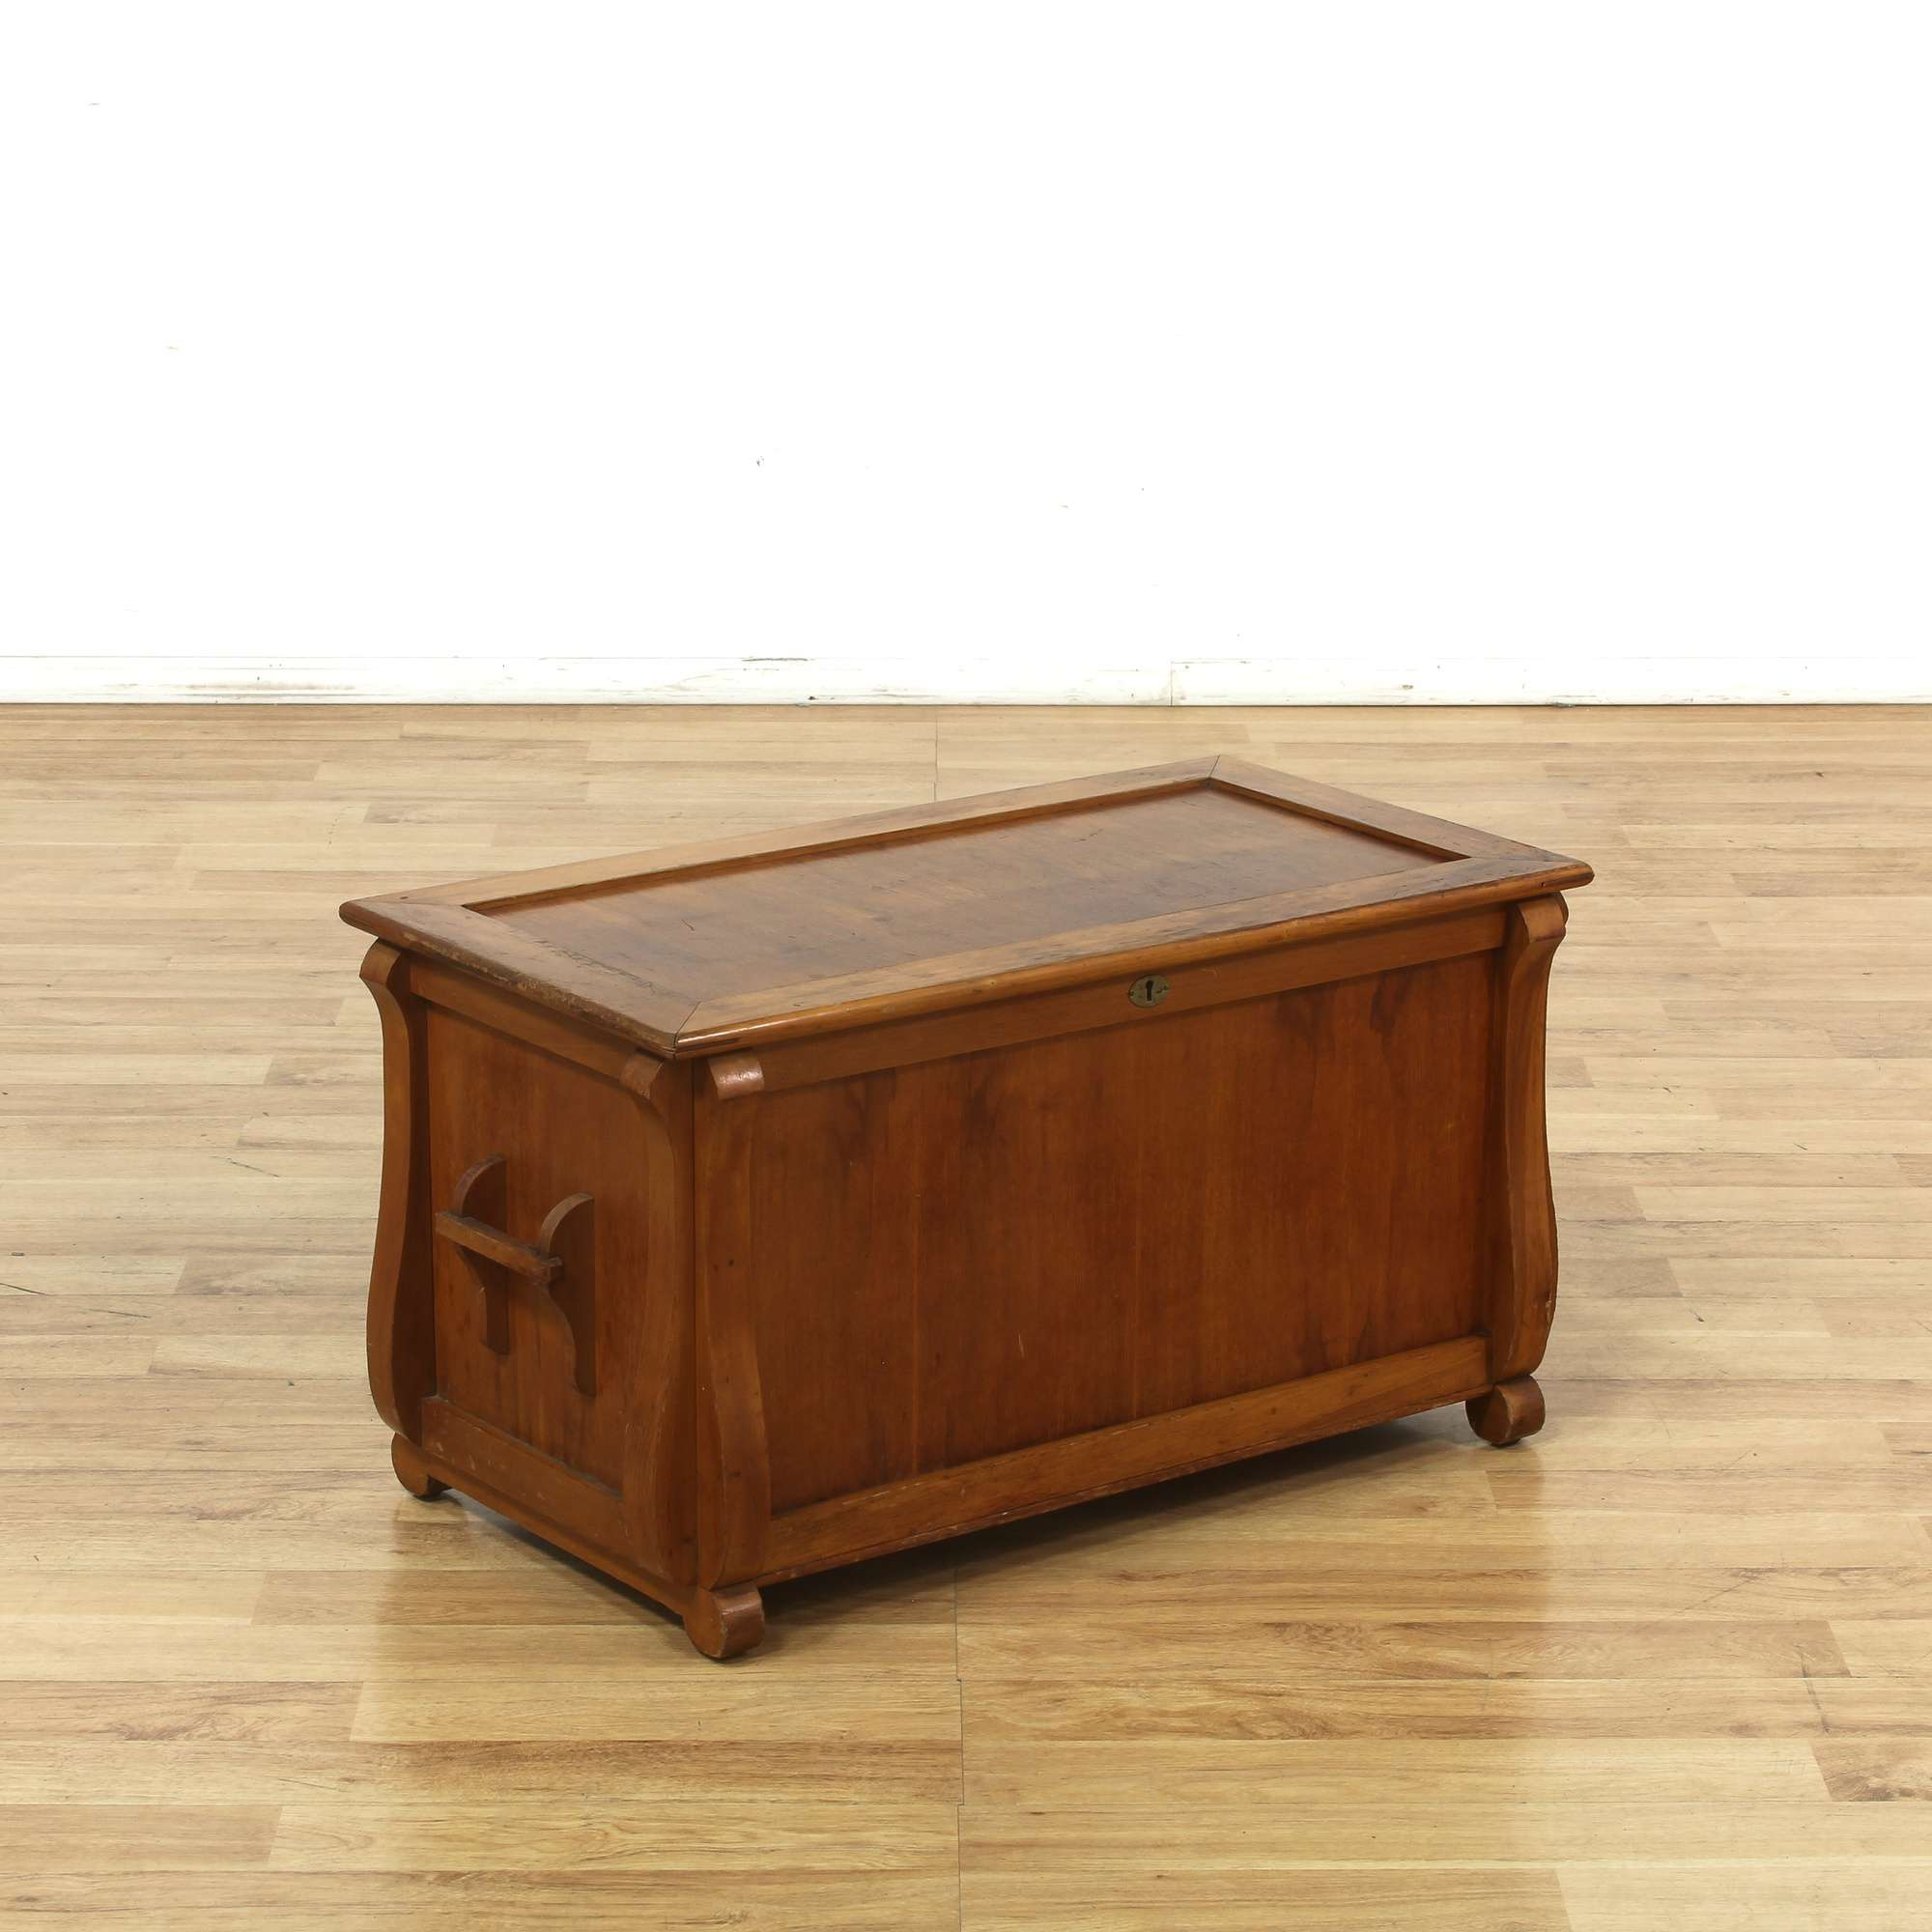 Wood Storage Trunk Chest Coffee Table - Loveseat Vintage Furniture